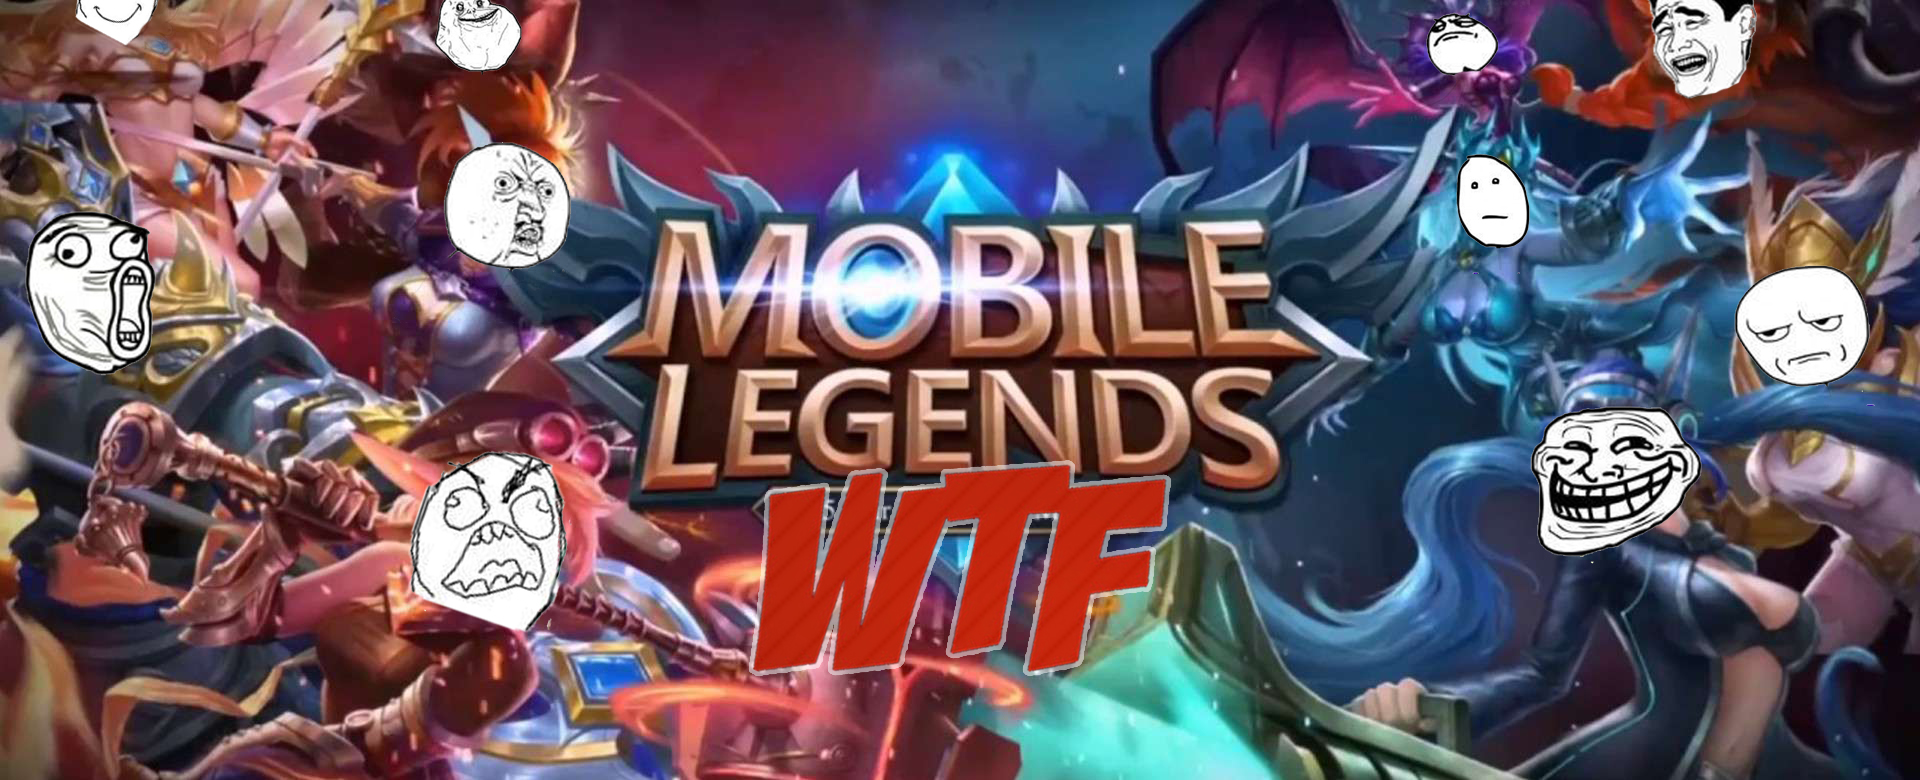 Mobile Legends WTF Moments.jpg